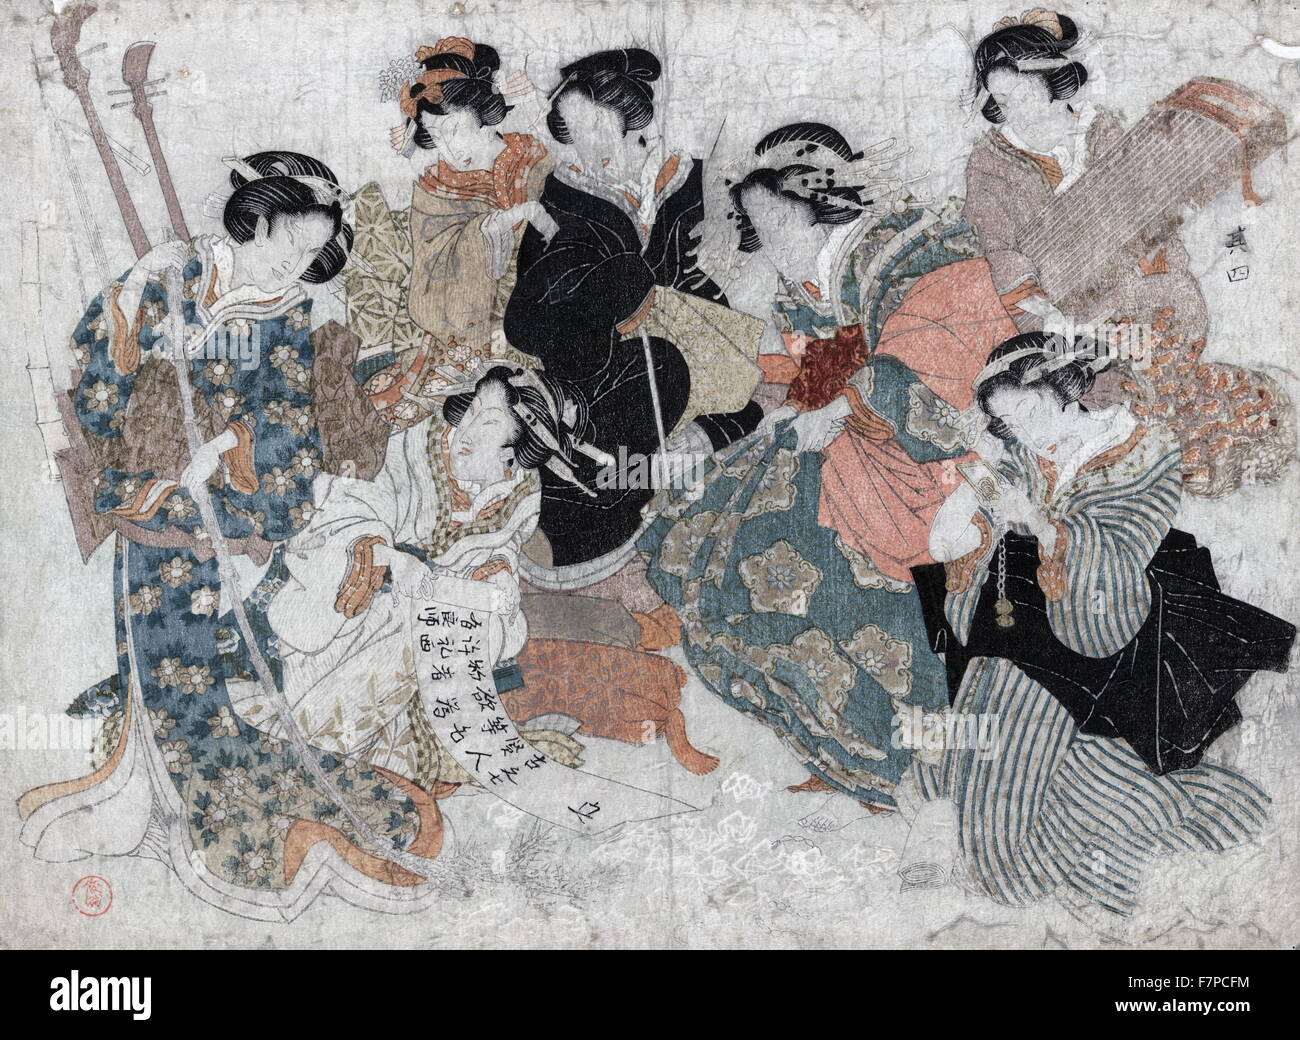 seven women portraying the seven sages of the bamboo grove - Stock Image